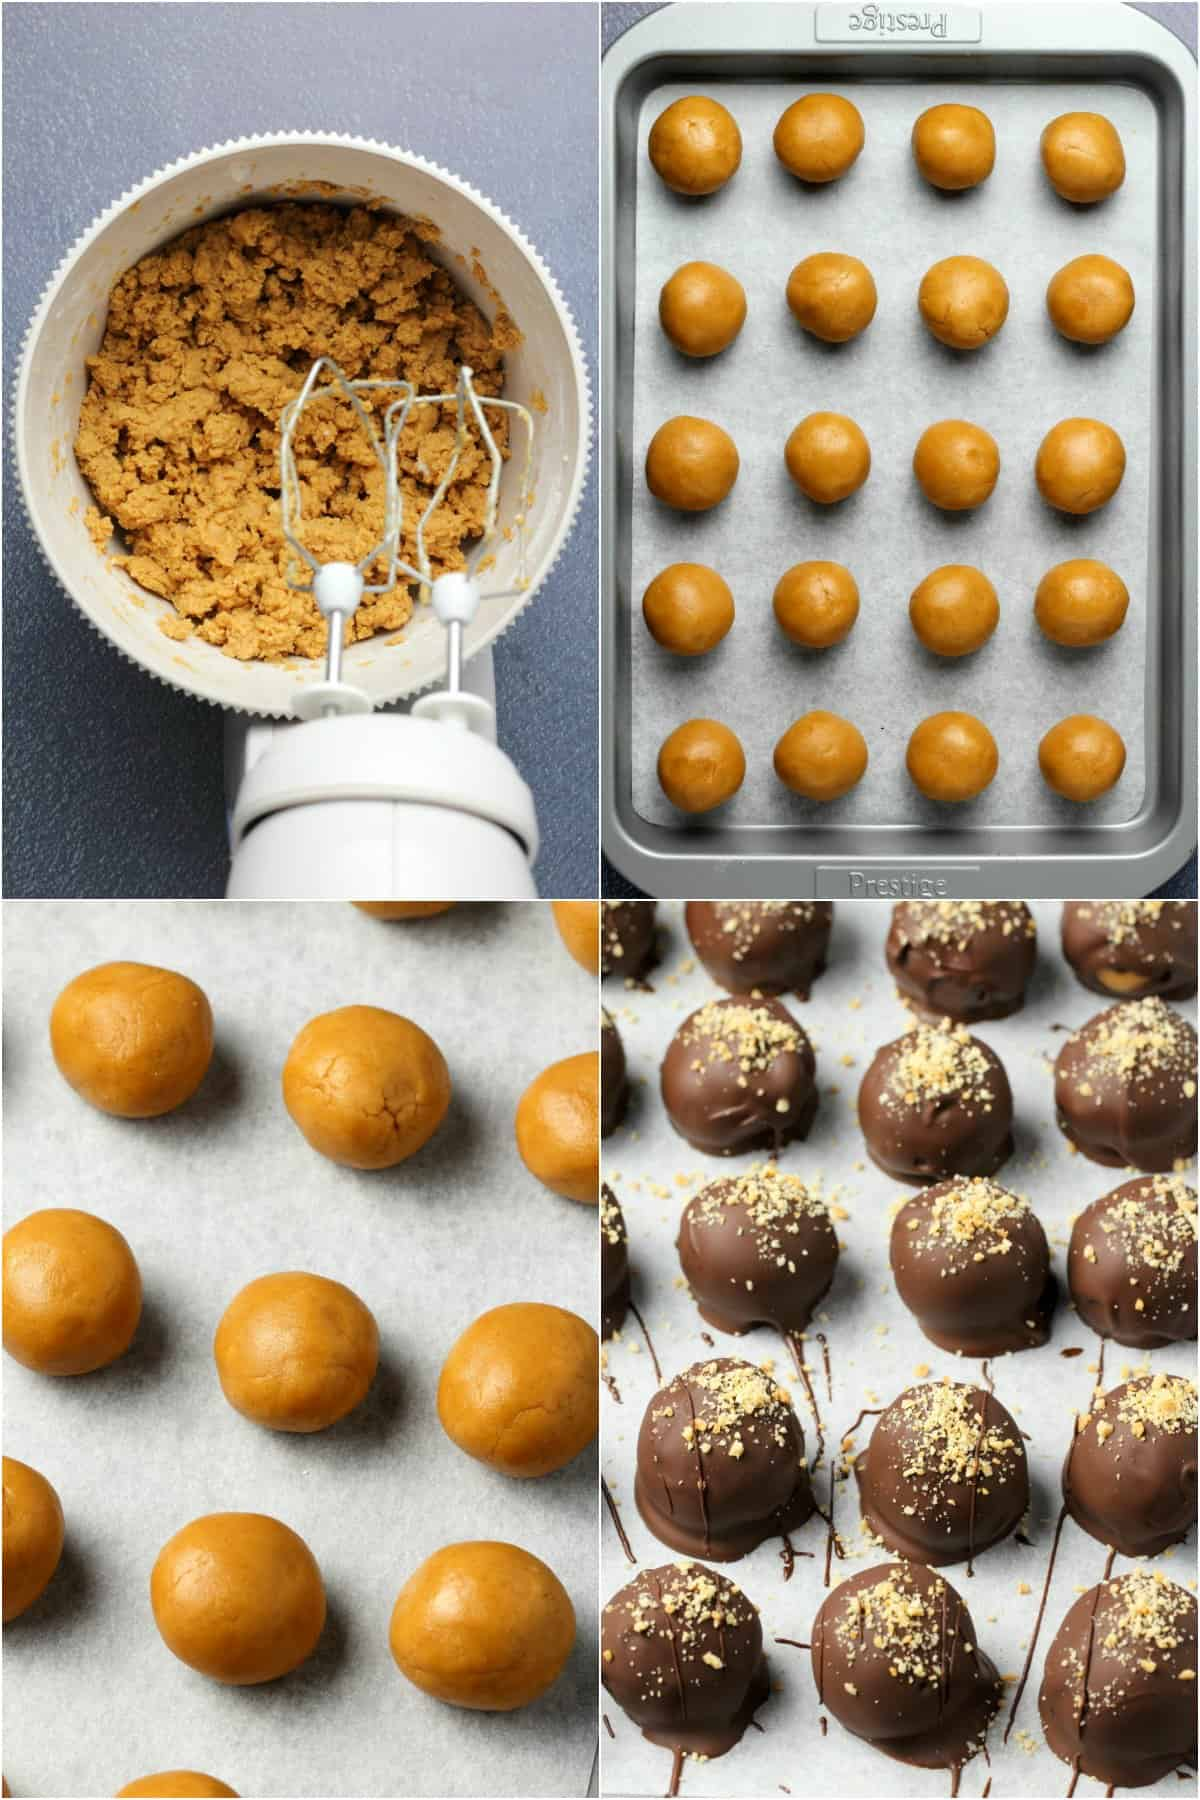 Step by step process photo collage of making vegan chocolate peanut butter balls.